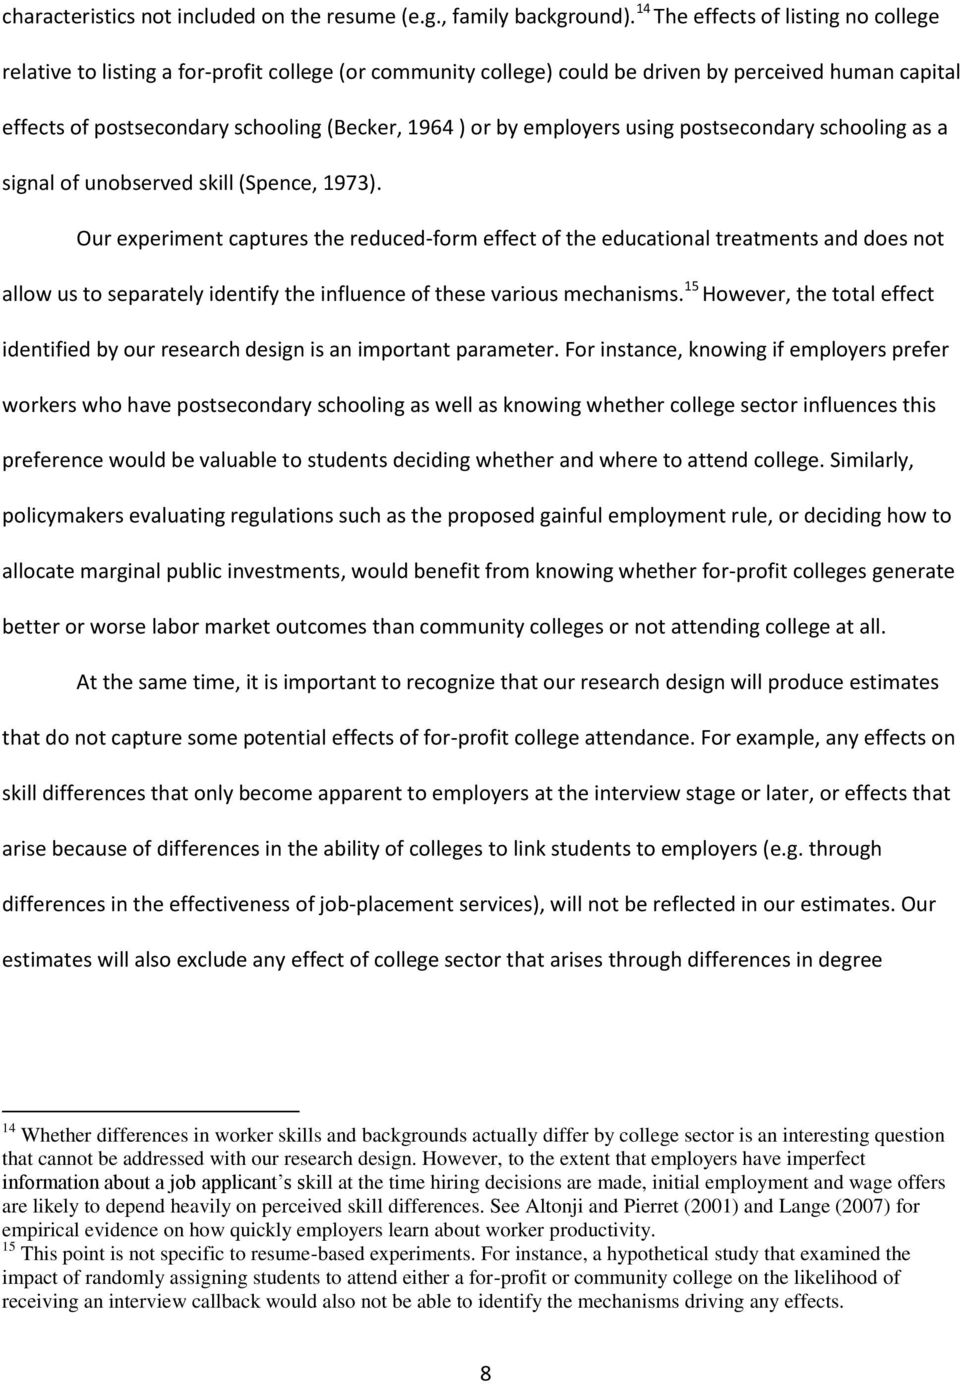 by employers using postsecondary schooling as a signal of unobserved skill (Spence, 1973).